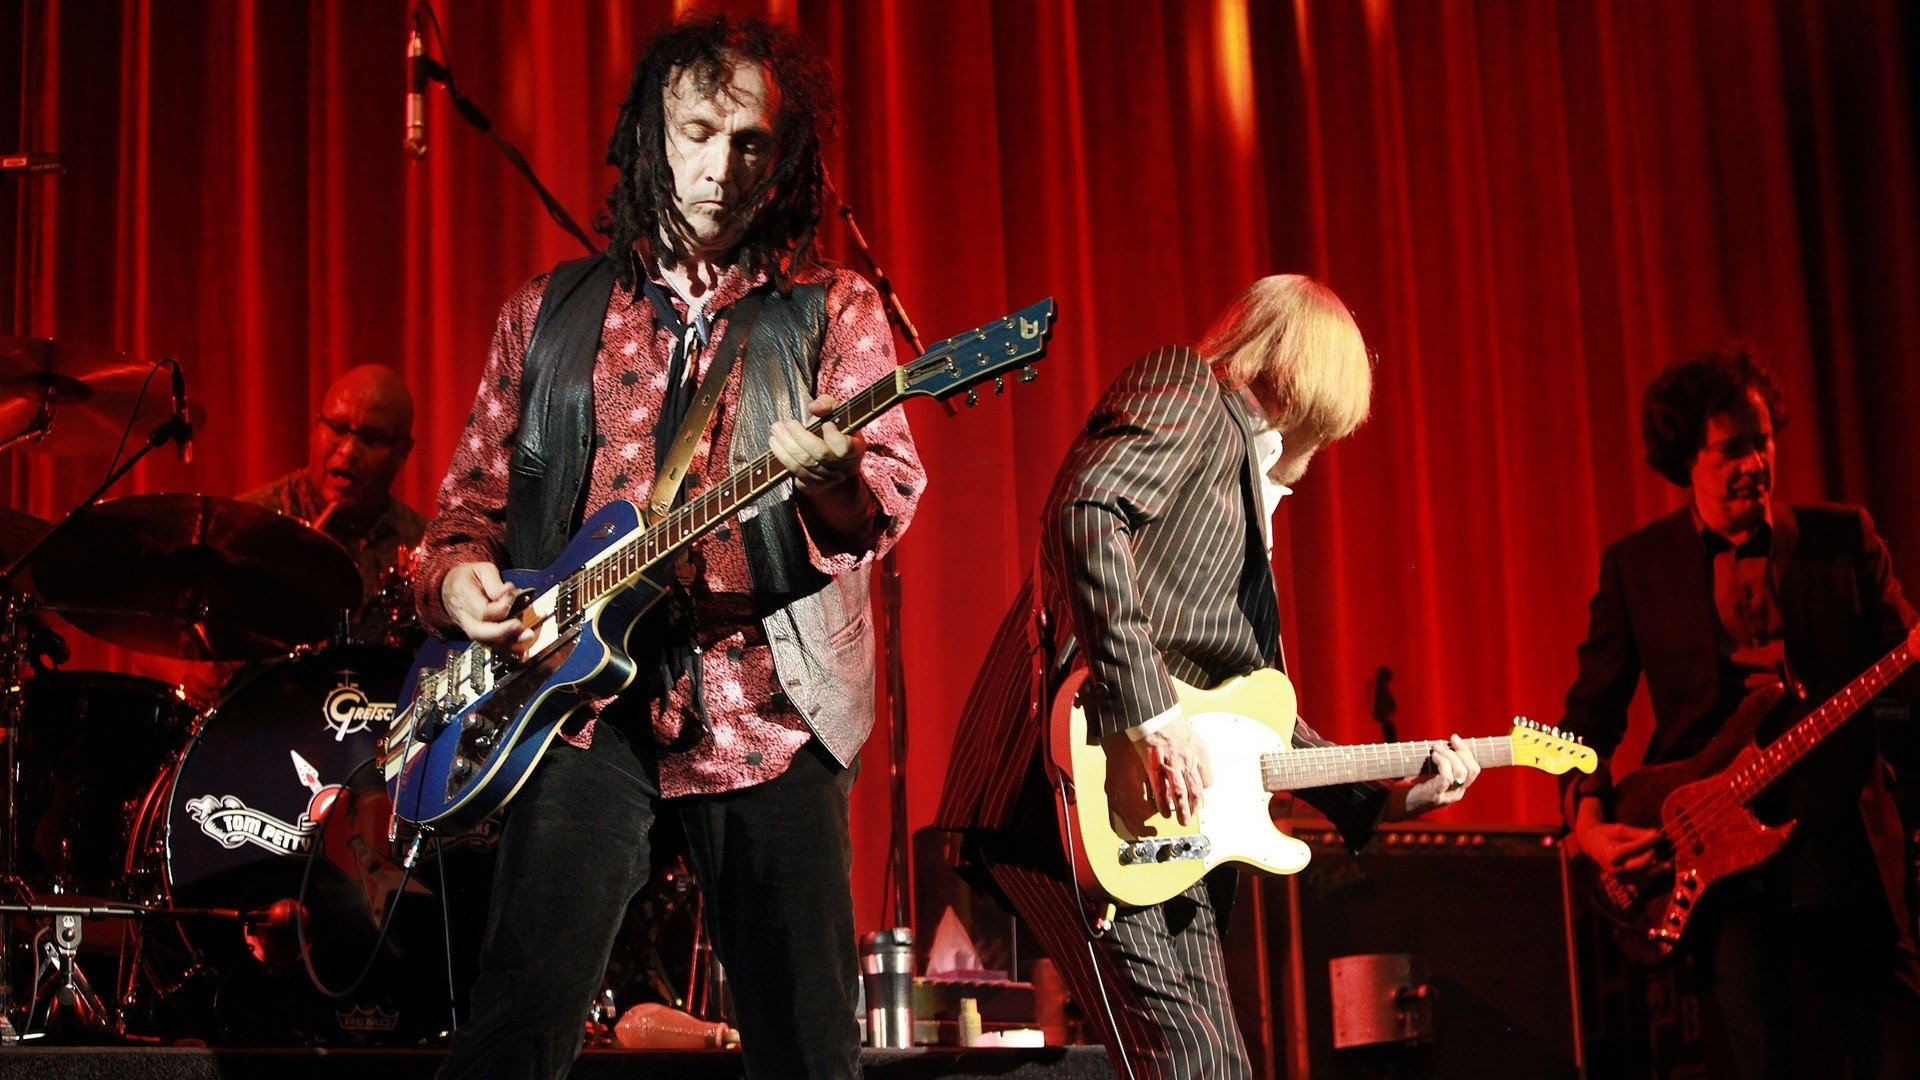 Tom Petty And The Heartbreakers Hd Wallpaper Background Image